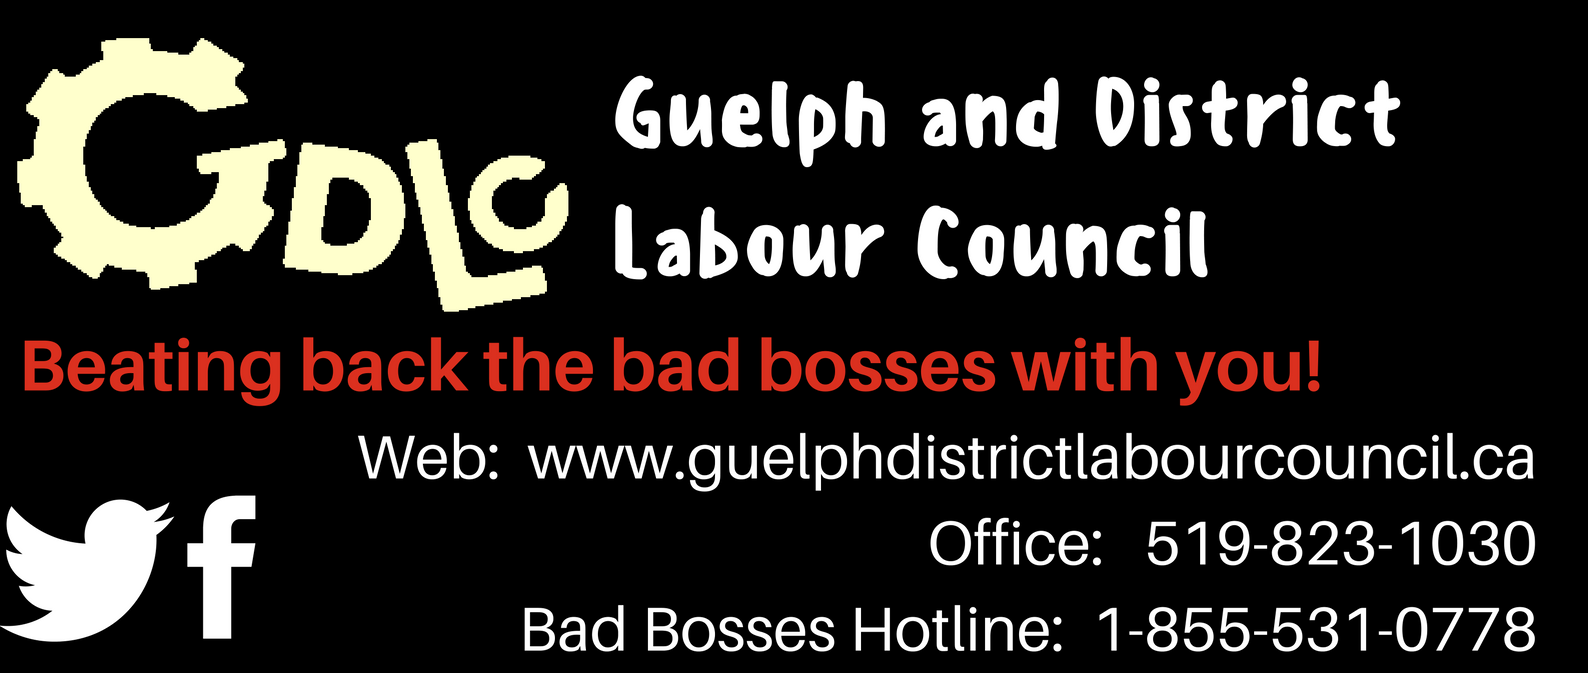 Guelph_and_District_Labour_Council.png